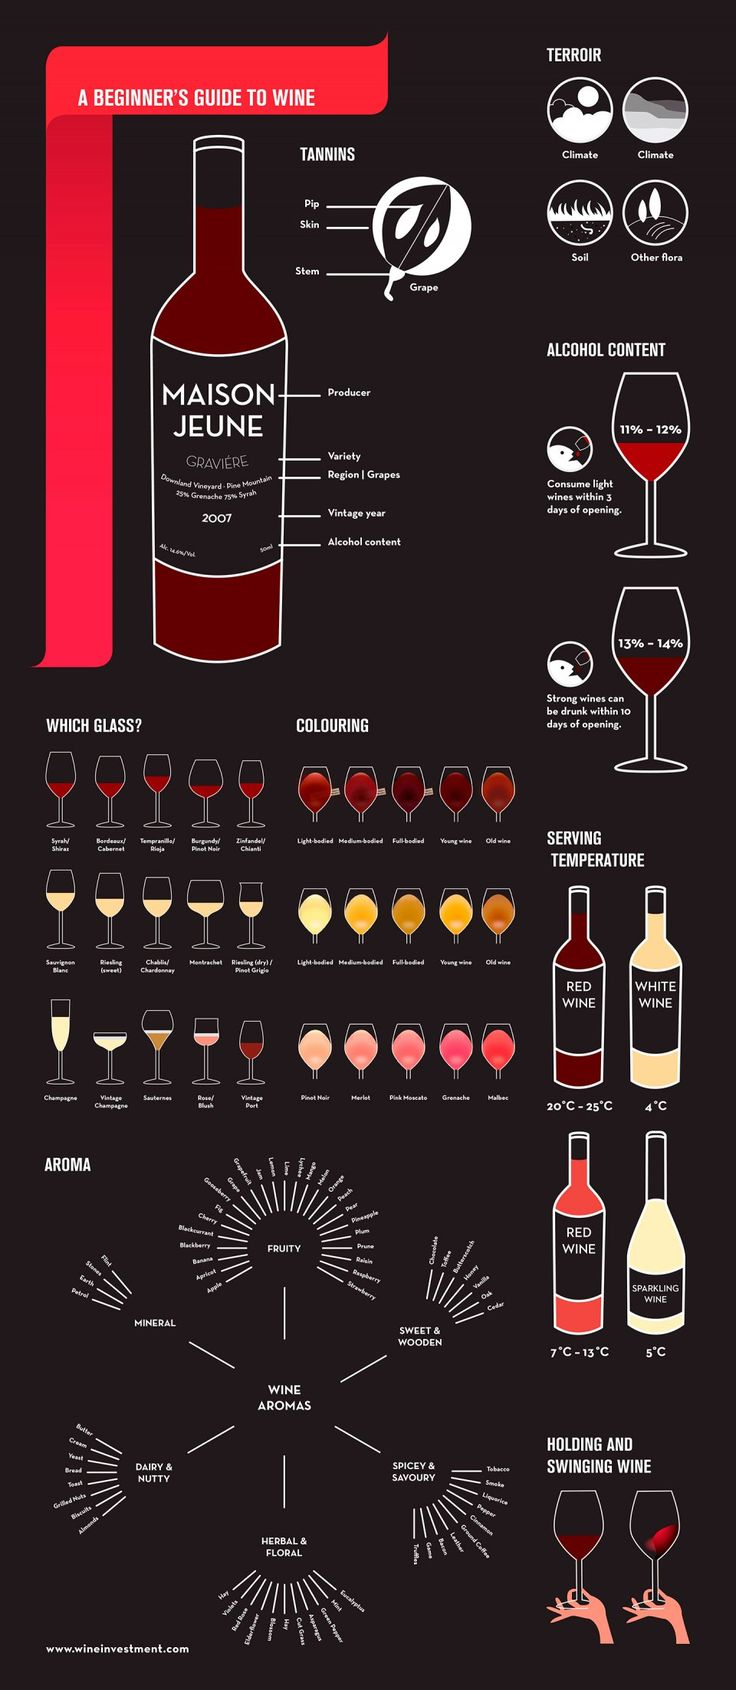 9 best wine images on pinterest colors graphics and beer how to sound like a wine expert in 9 basic steps gamestrikefo Image collections